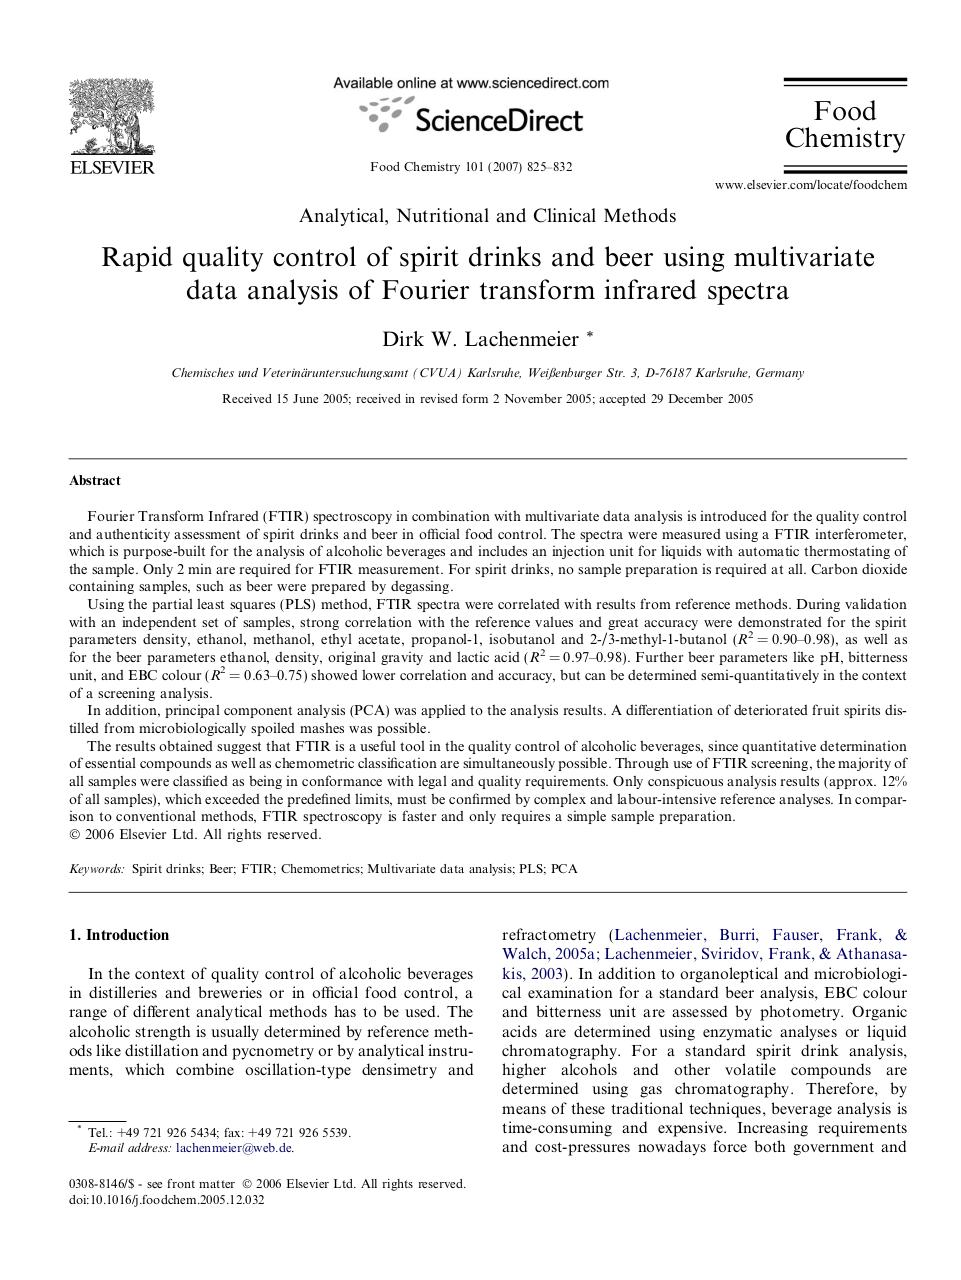 Rapid quality control of spirit drinks and beer using FTIR.pdf - page 1/8